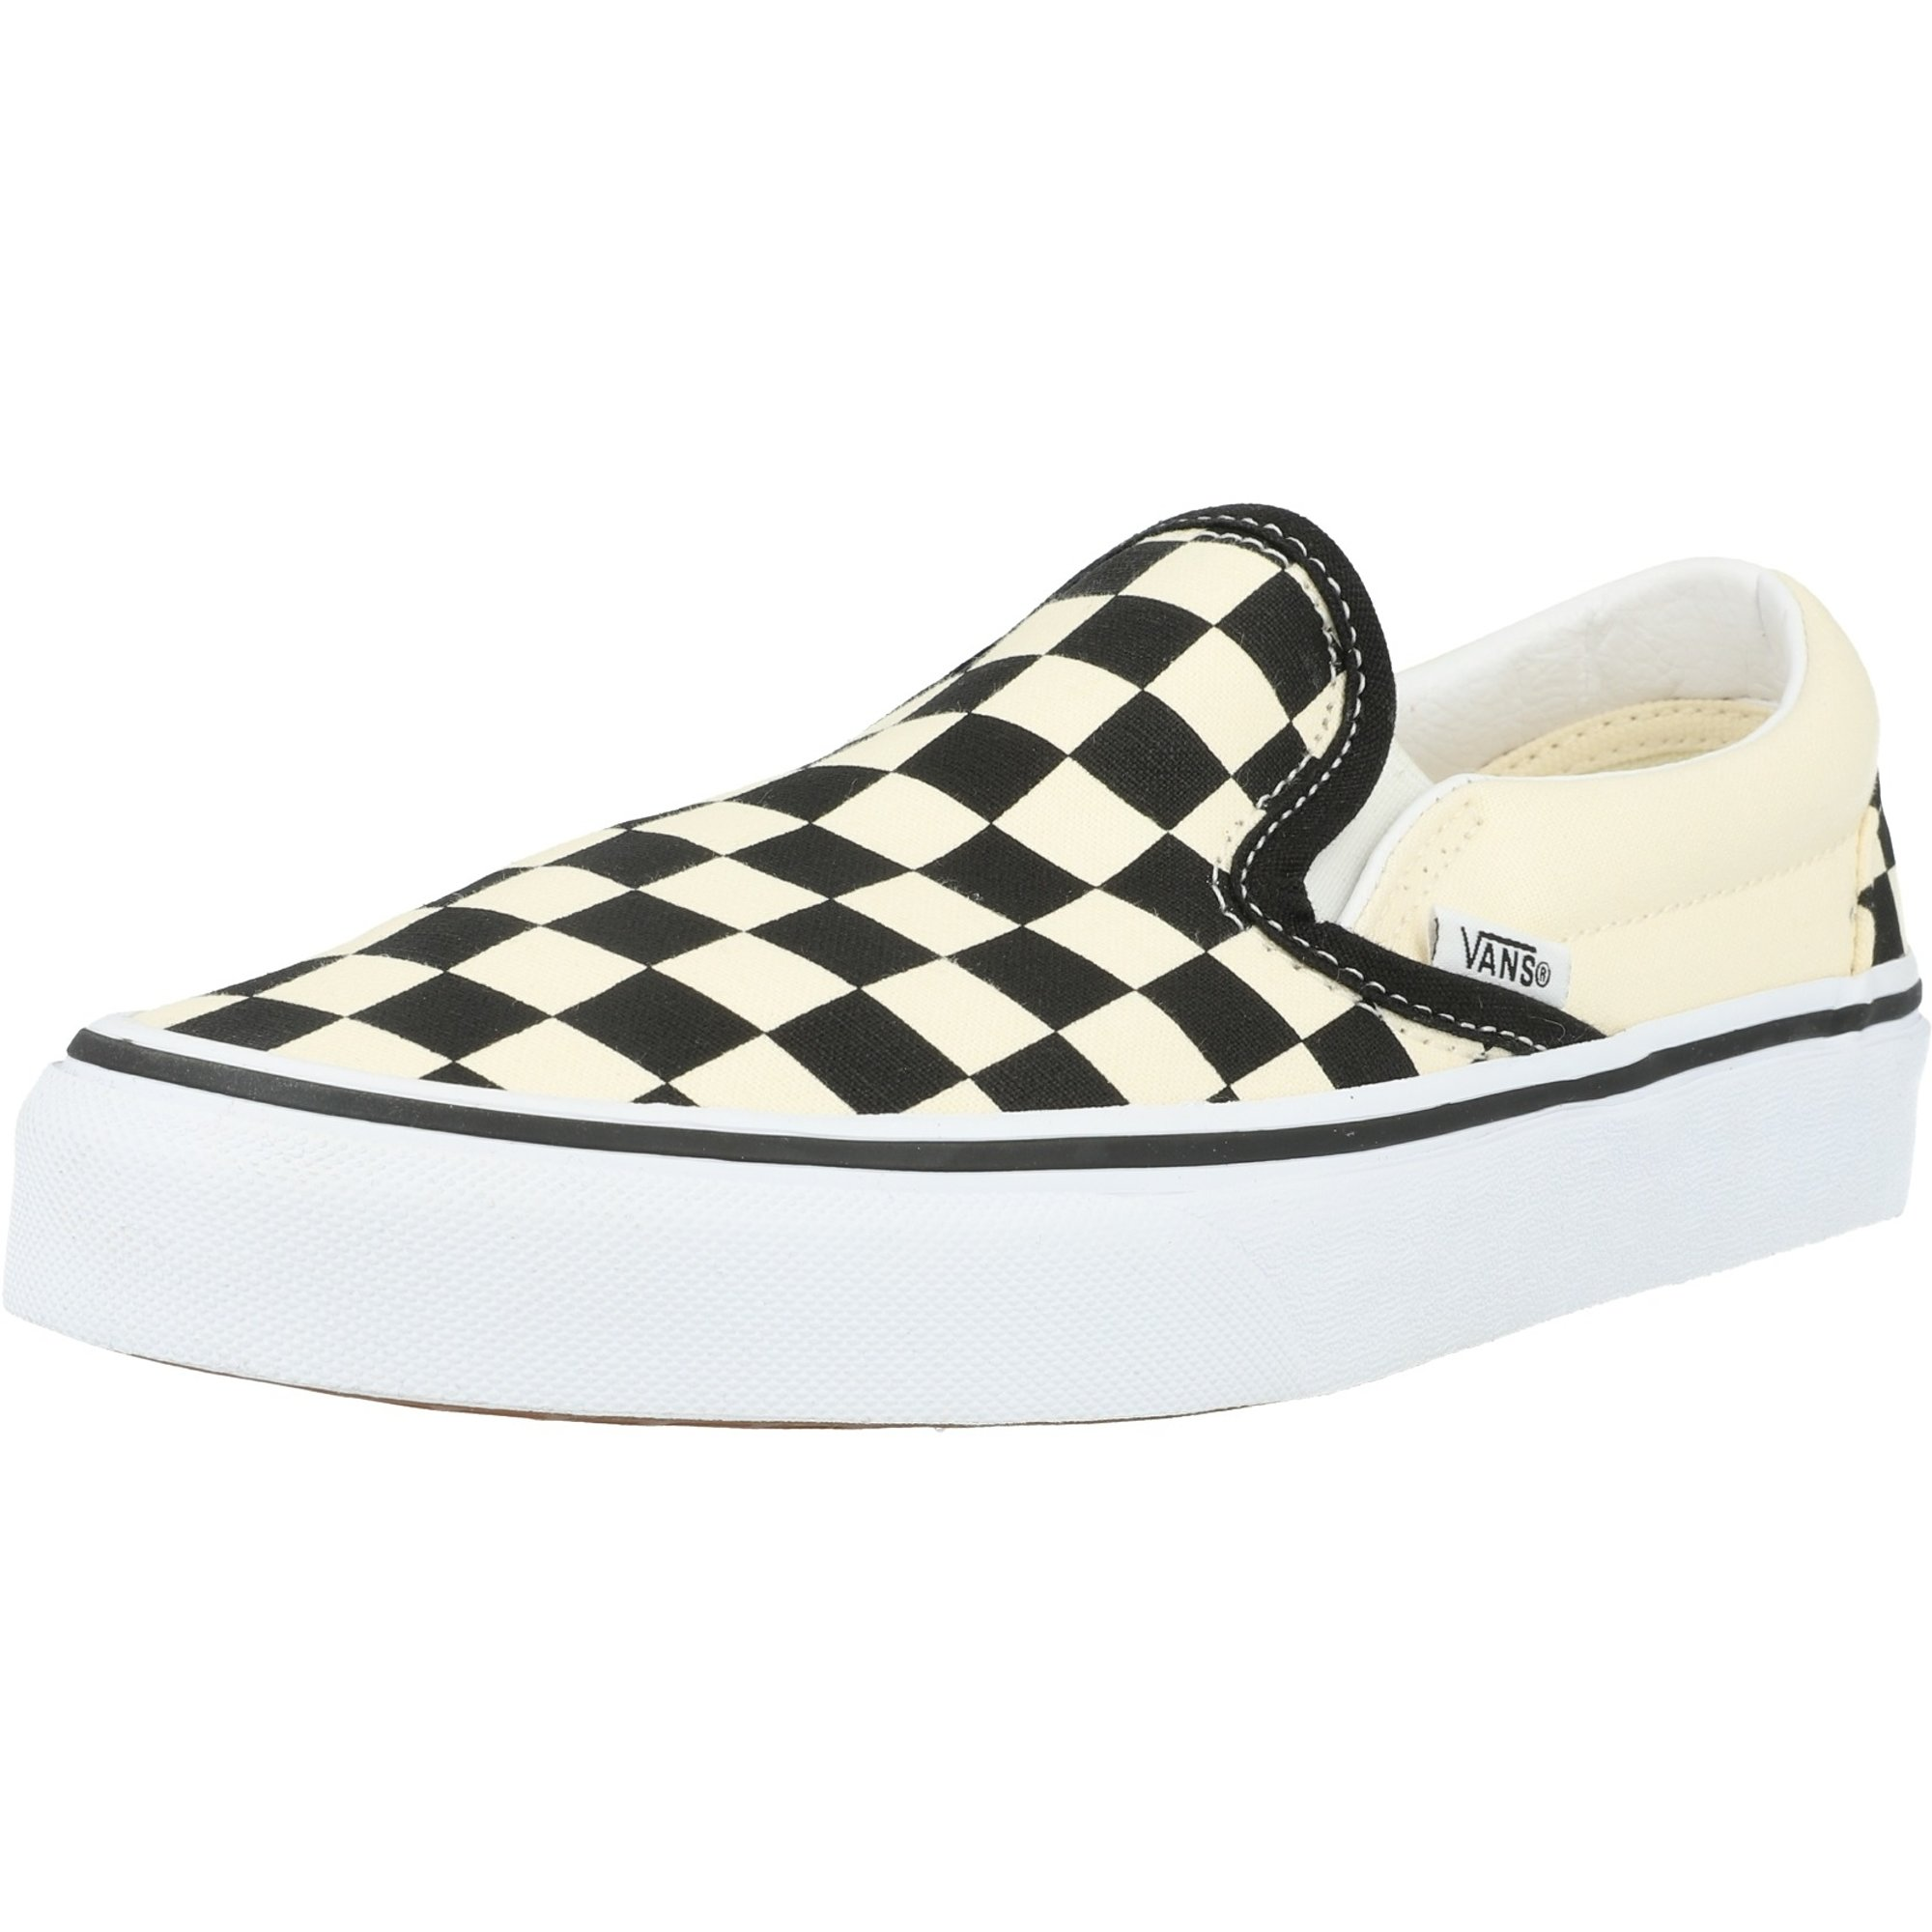 Vans UA Classic Slip-On Black/White Checkerboard Canvas Adult